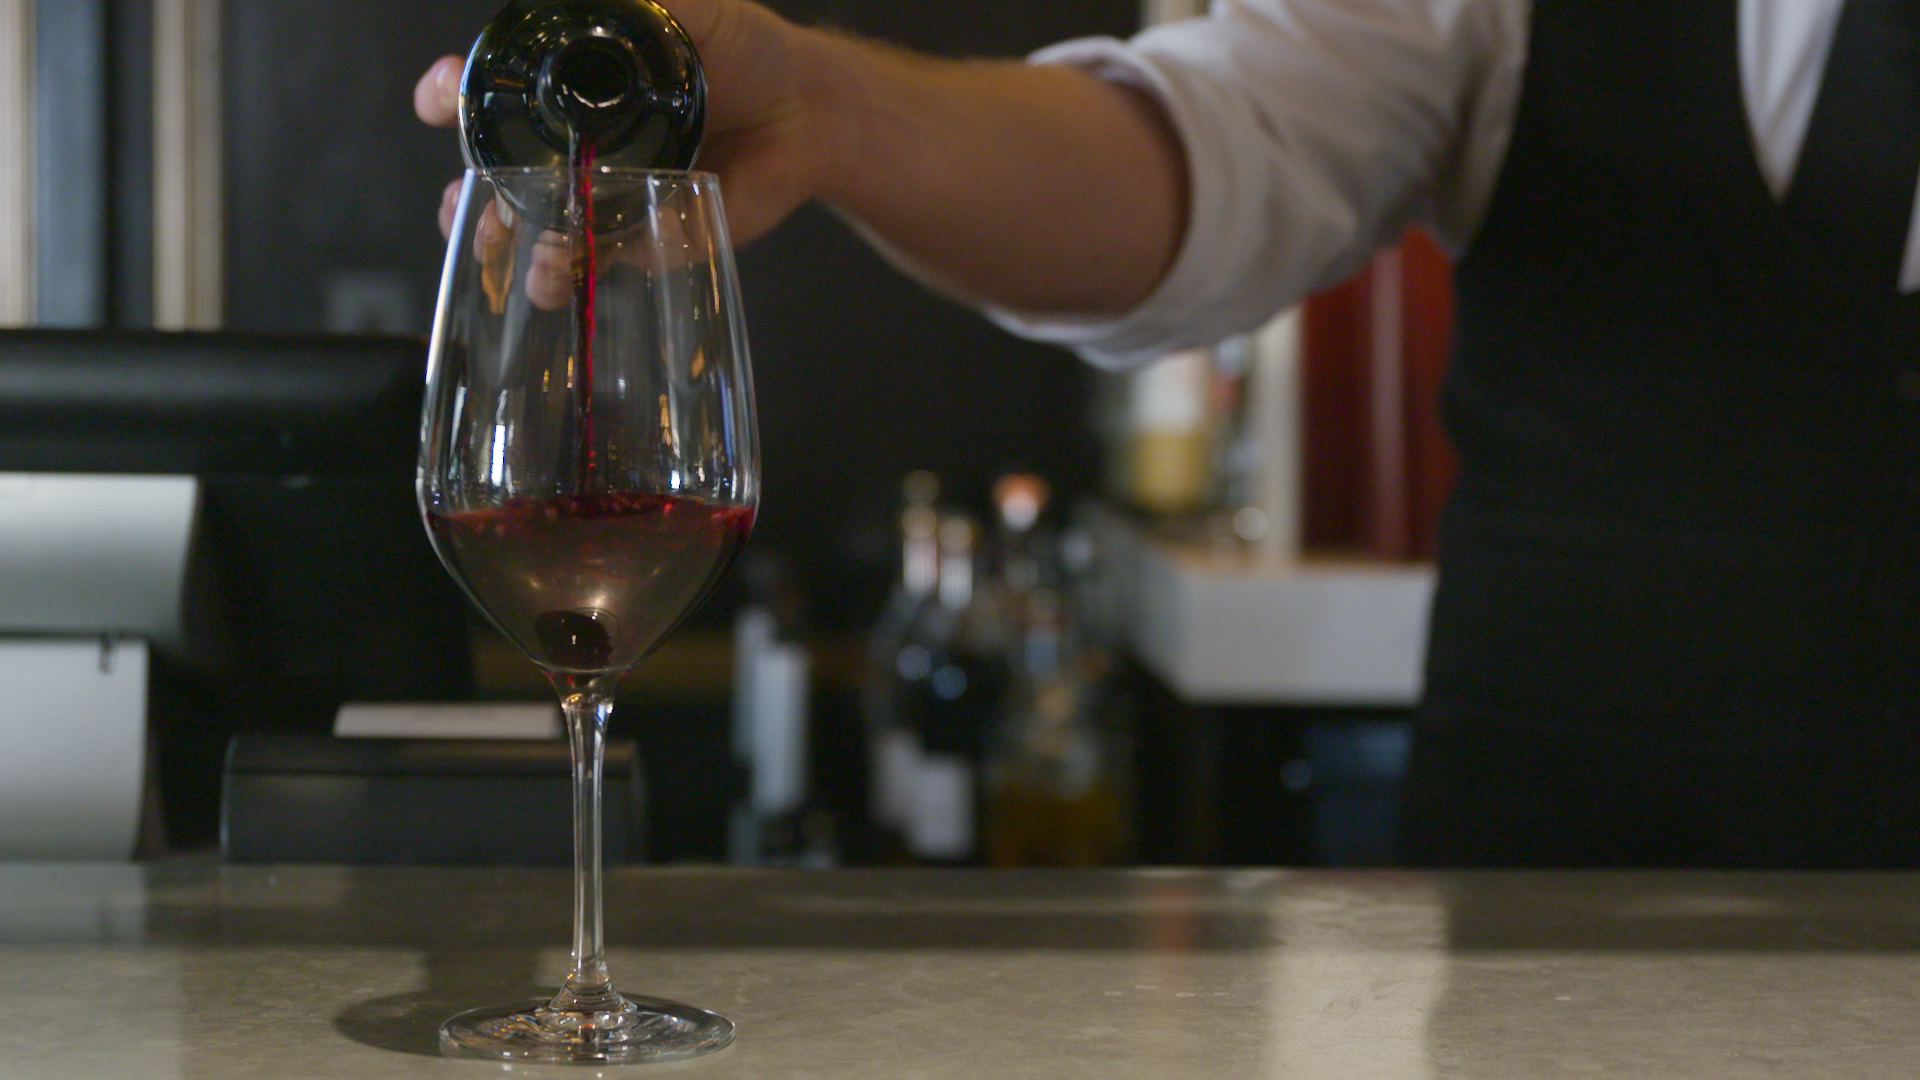 Uncorked: A Newsy Investigation Of The Elite Wine World